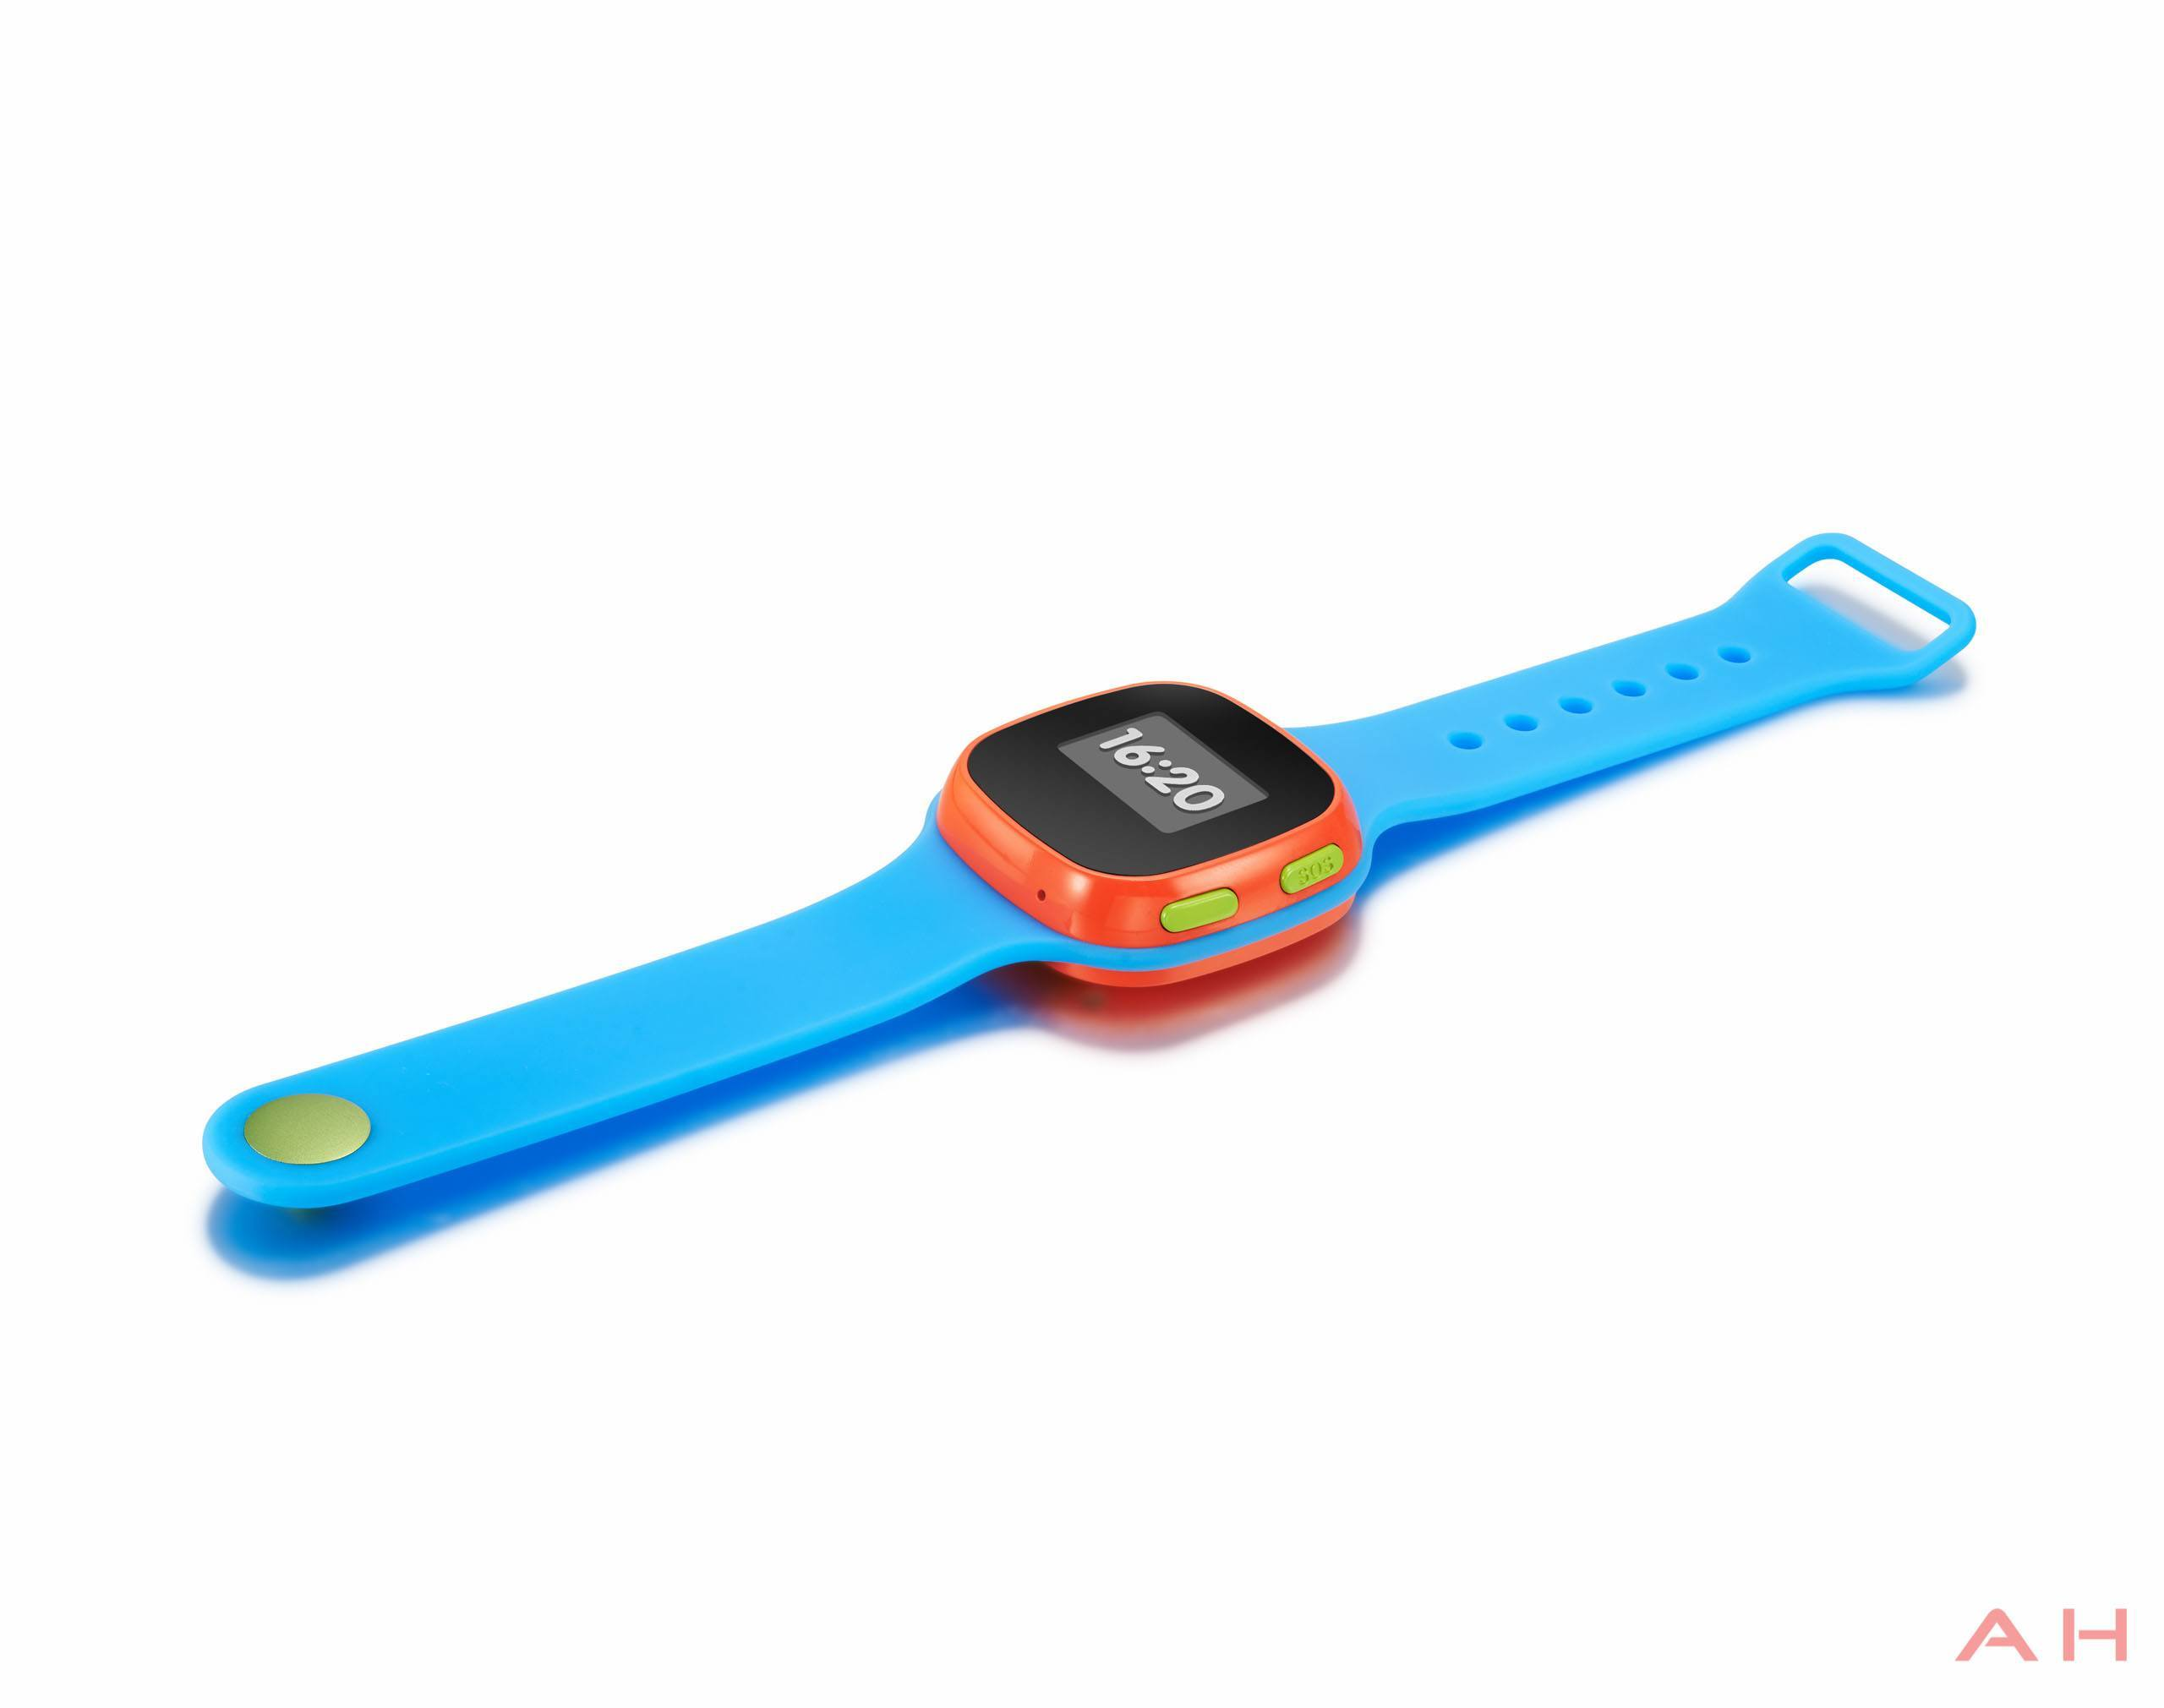 El reloj inteligente CareTime Children's Watch de Alcatel